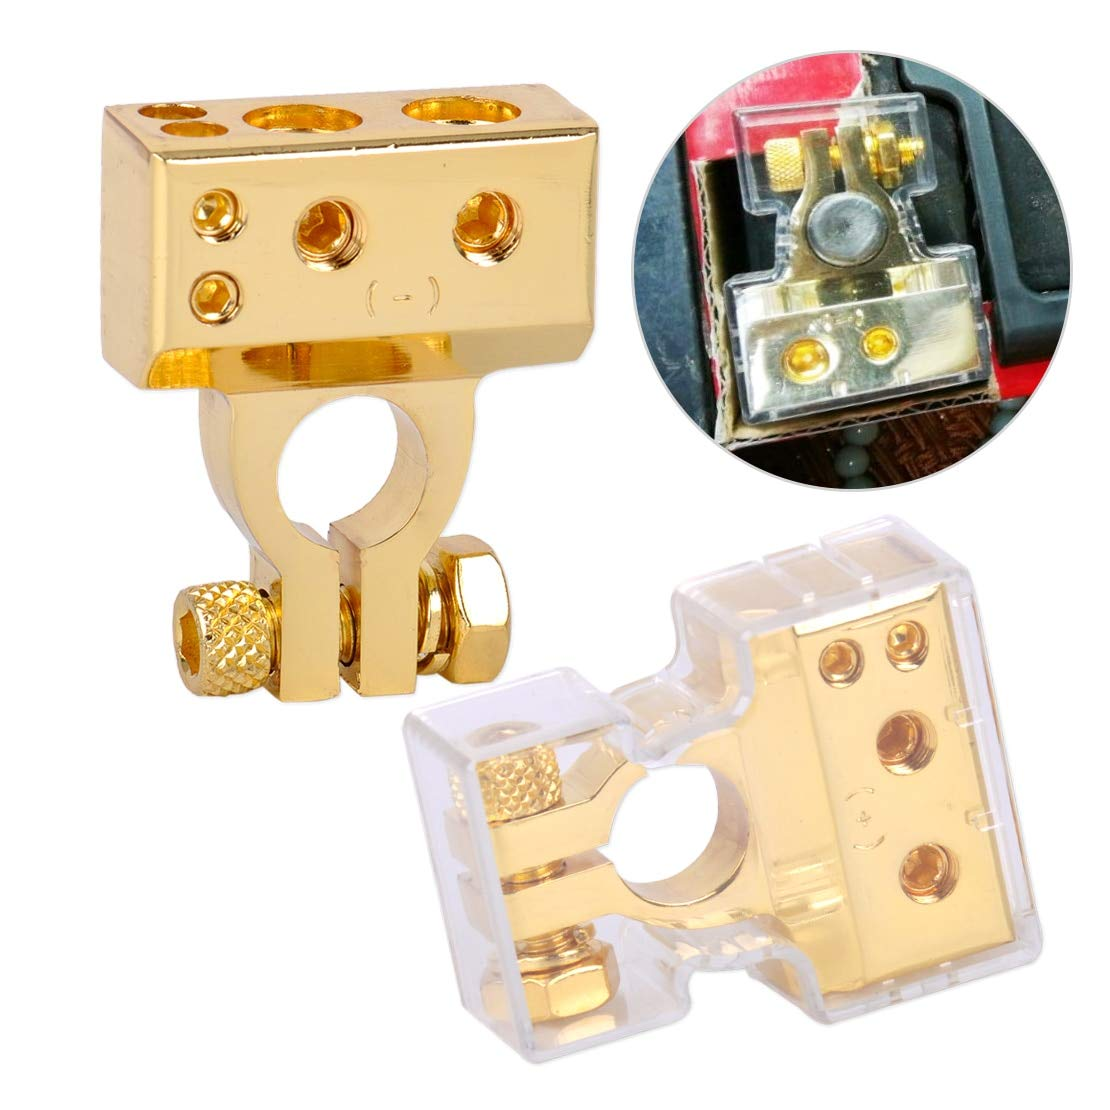 2Pcs Gold Zinc Alloy 2 4 8 Gauge Awg 12V Positive & Negative Car Battery Terminal Clamp Connector With Cover by TX-CONSUMER